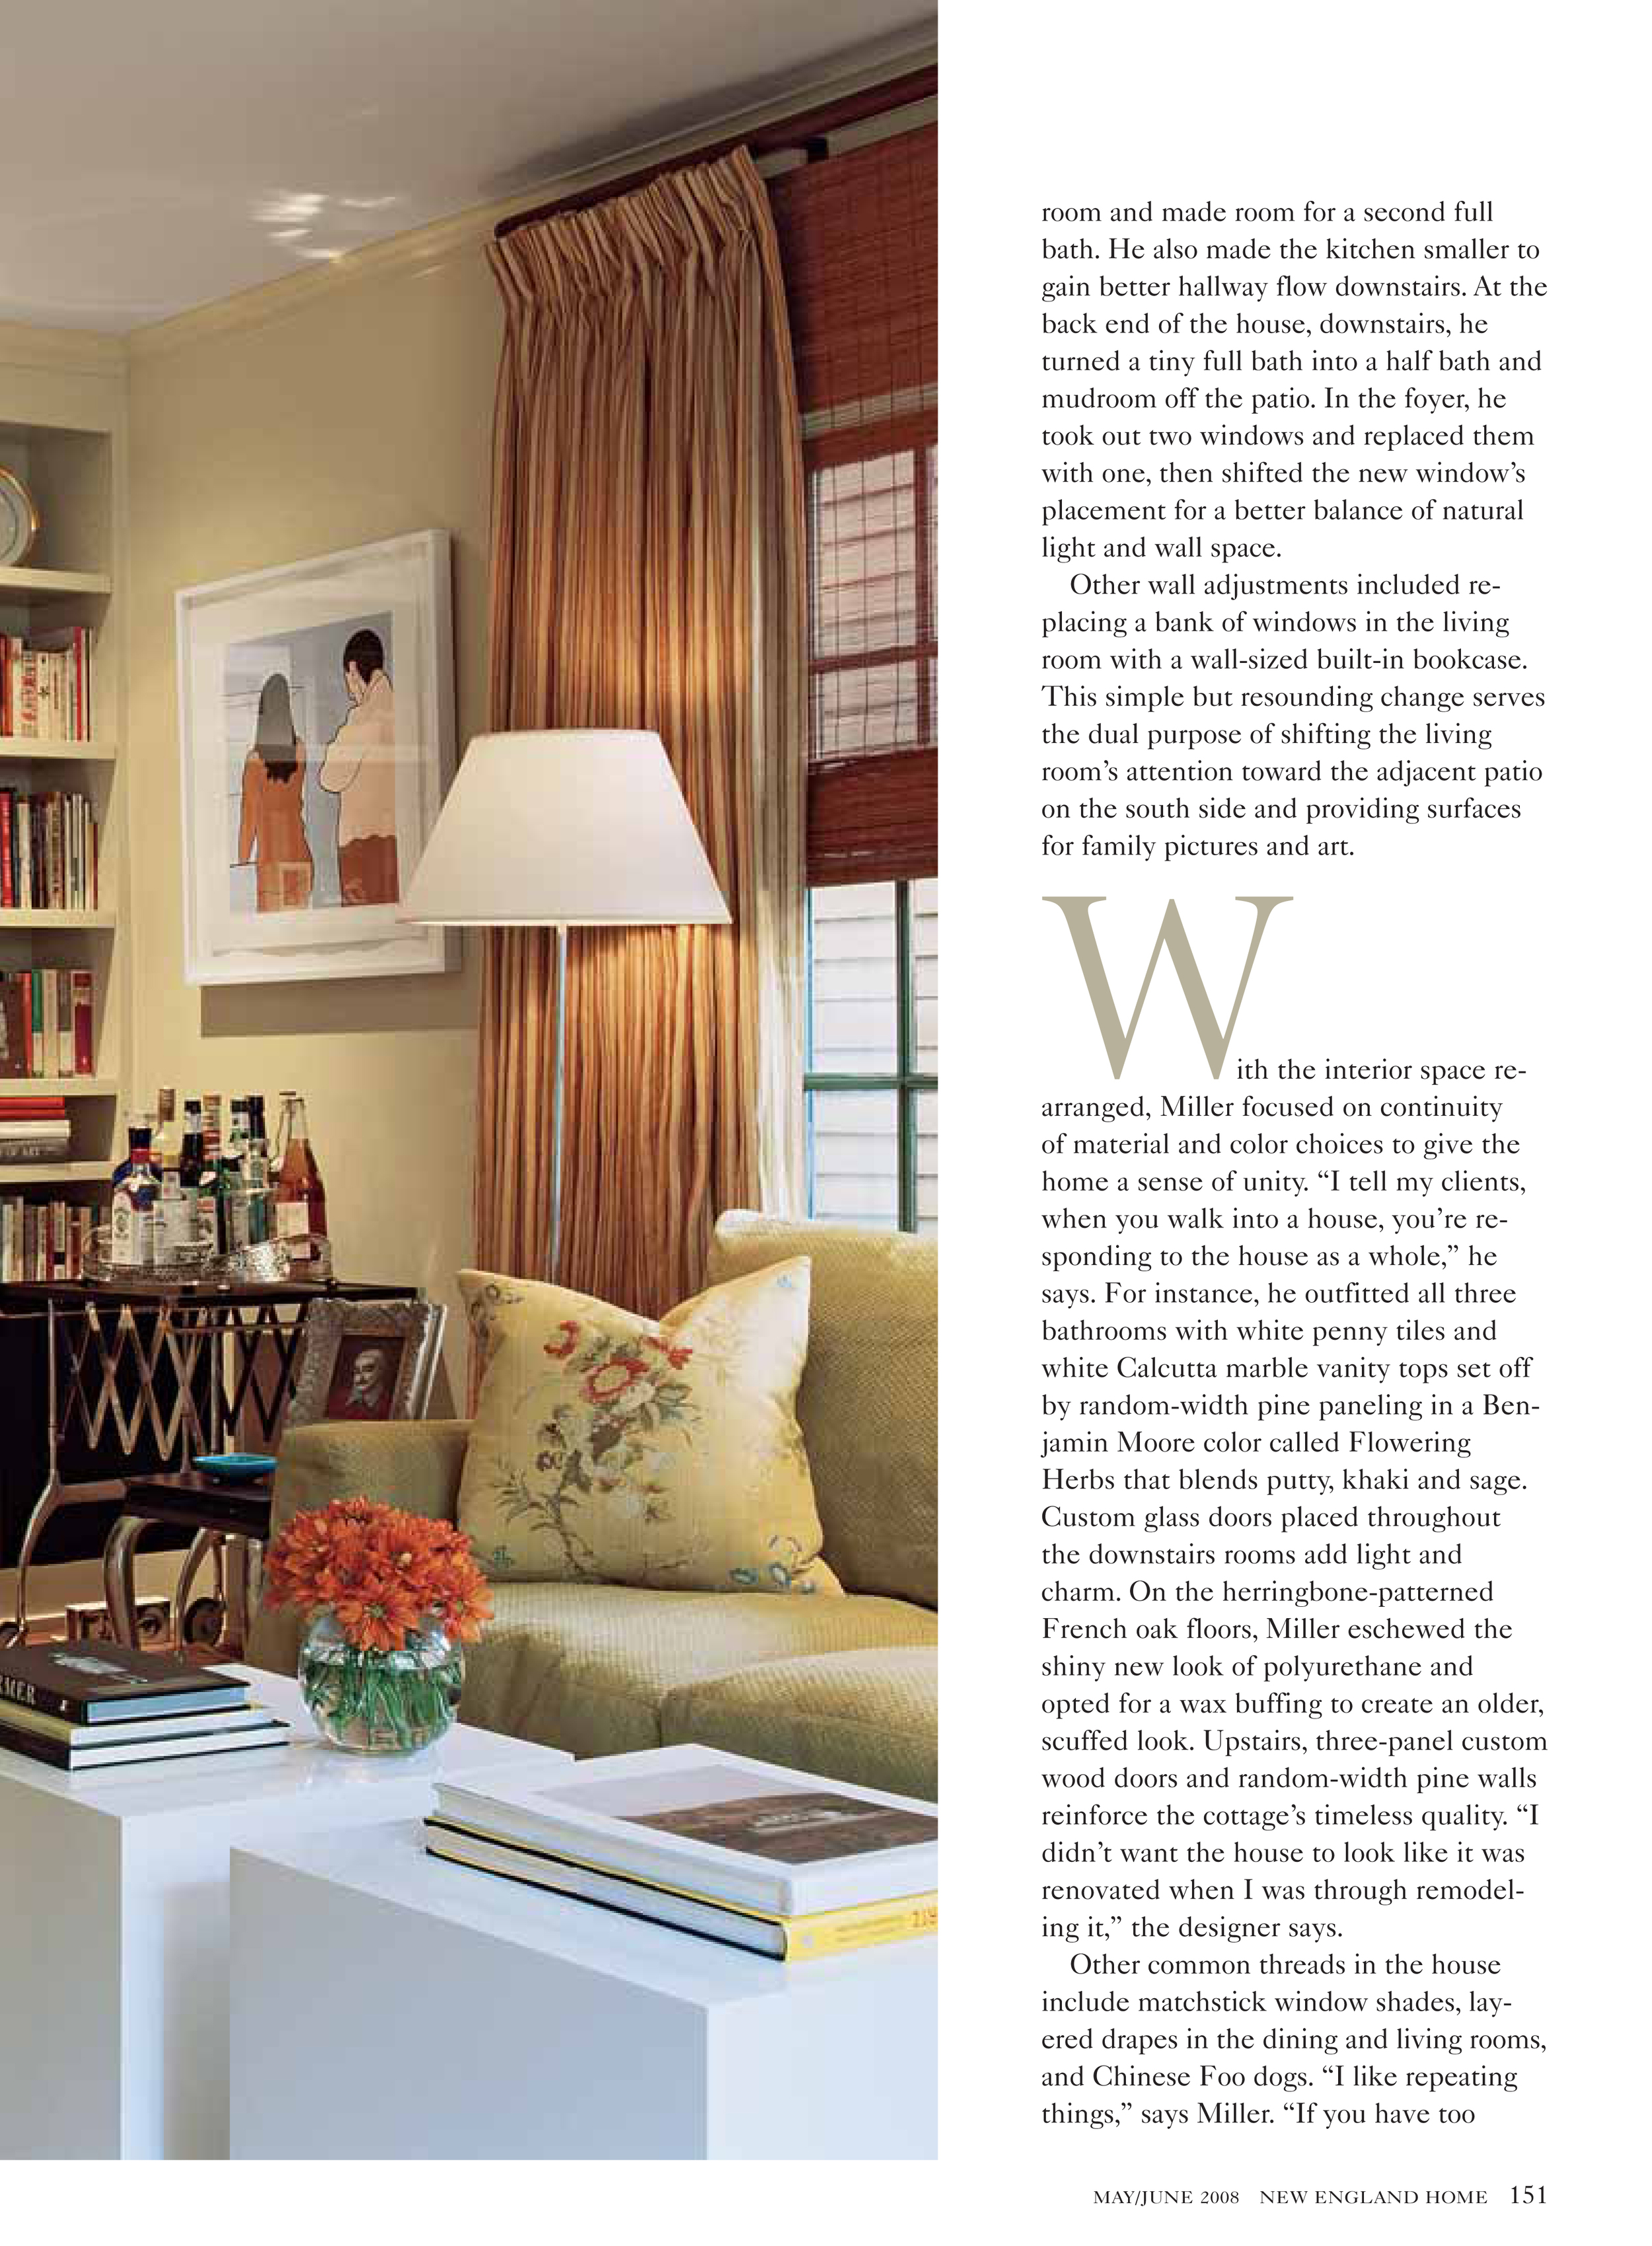 New England Home Mag - 10 Foster - reprint proof 1-7.jpg